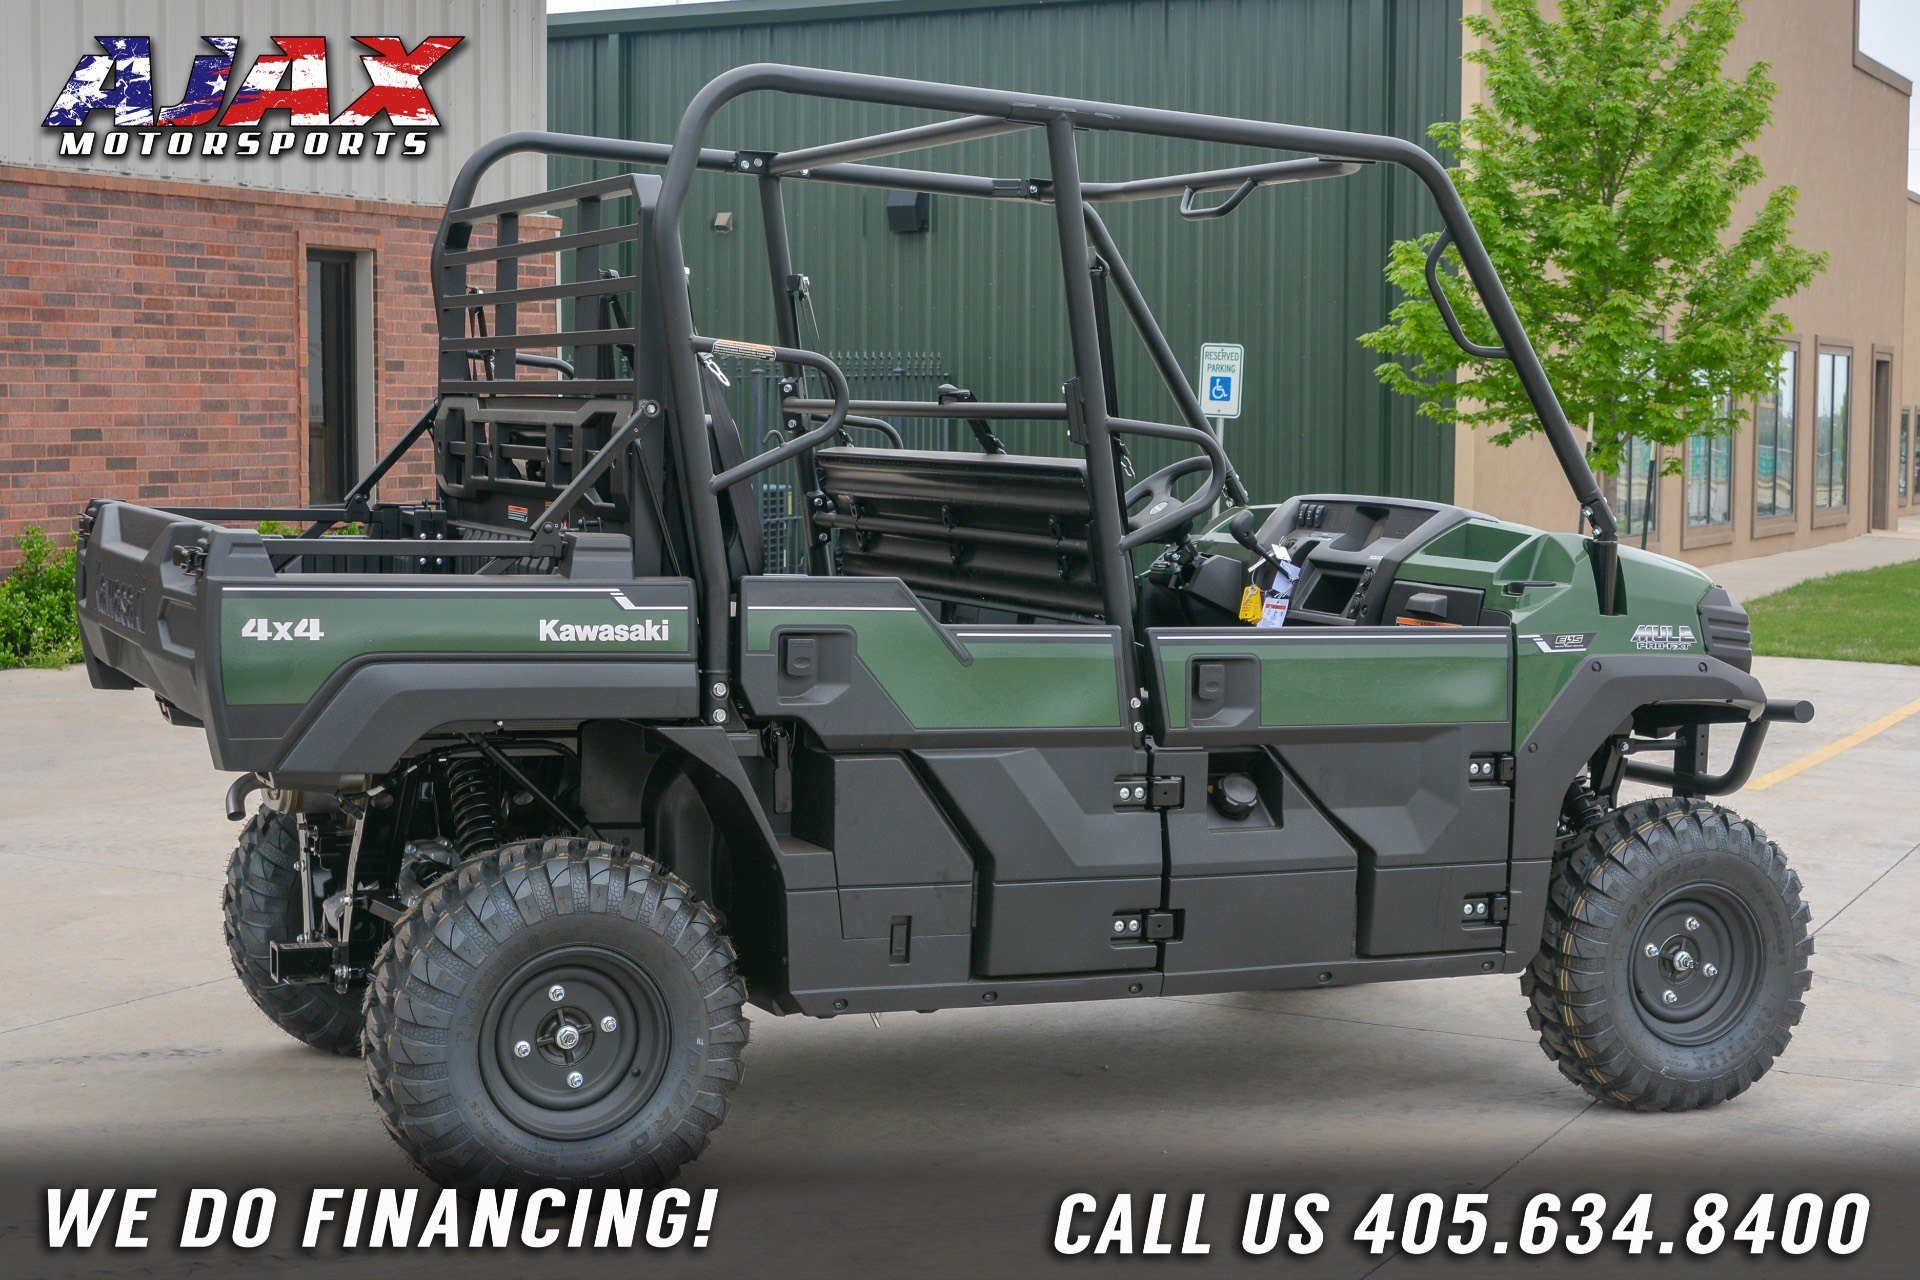 2020 Kawasaki Mule PRO-FXT EPS in Oklahoma City, Oklahoma - Photo 6